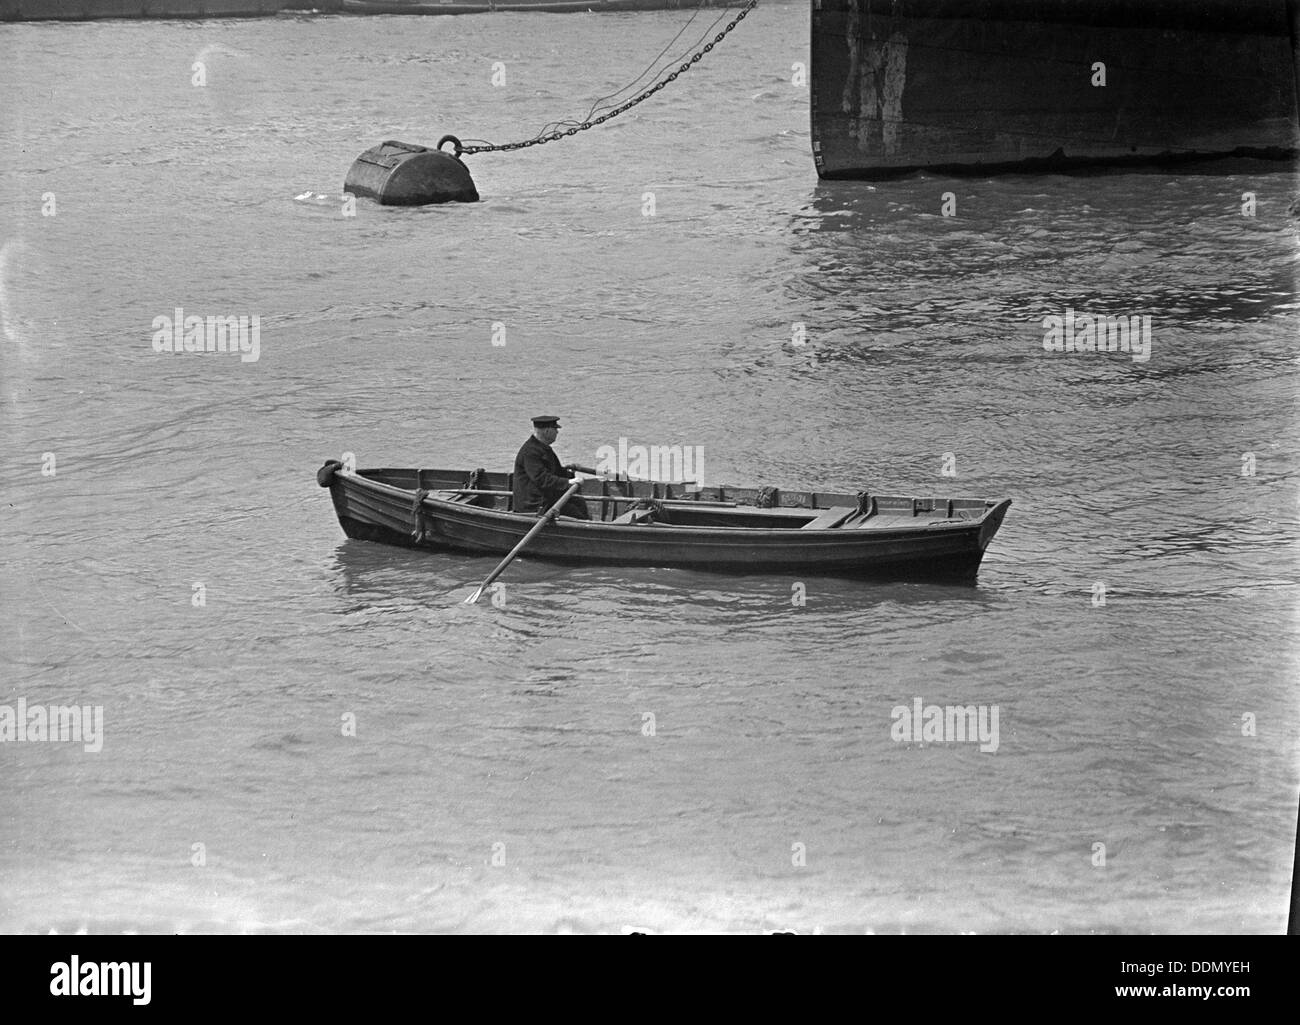 A man rowing a boat in London docks, c1945-c1965. Artist: SW Rawlings - Stock Image